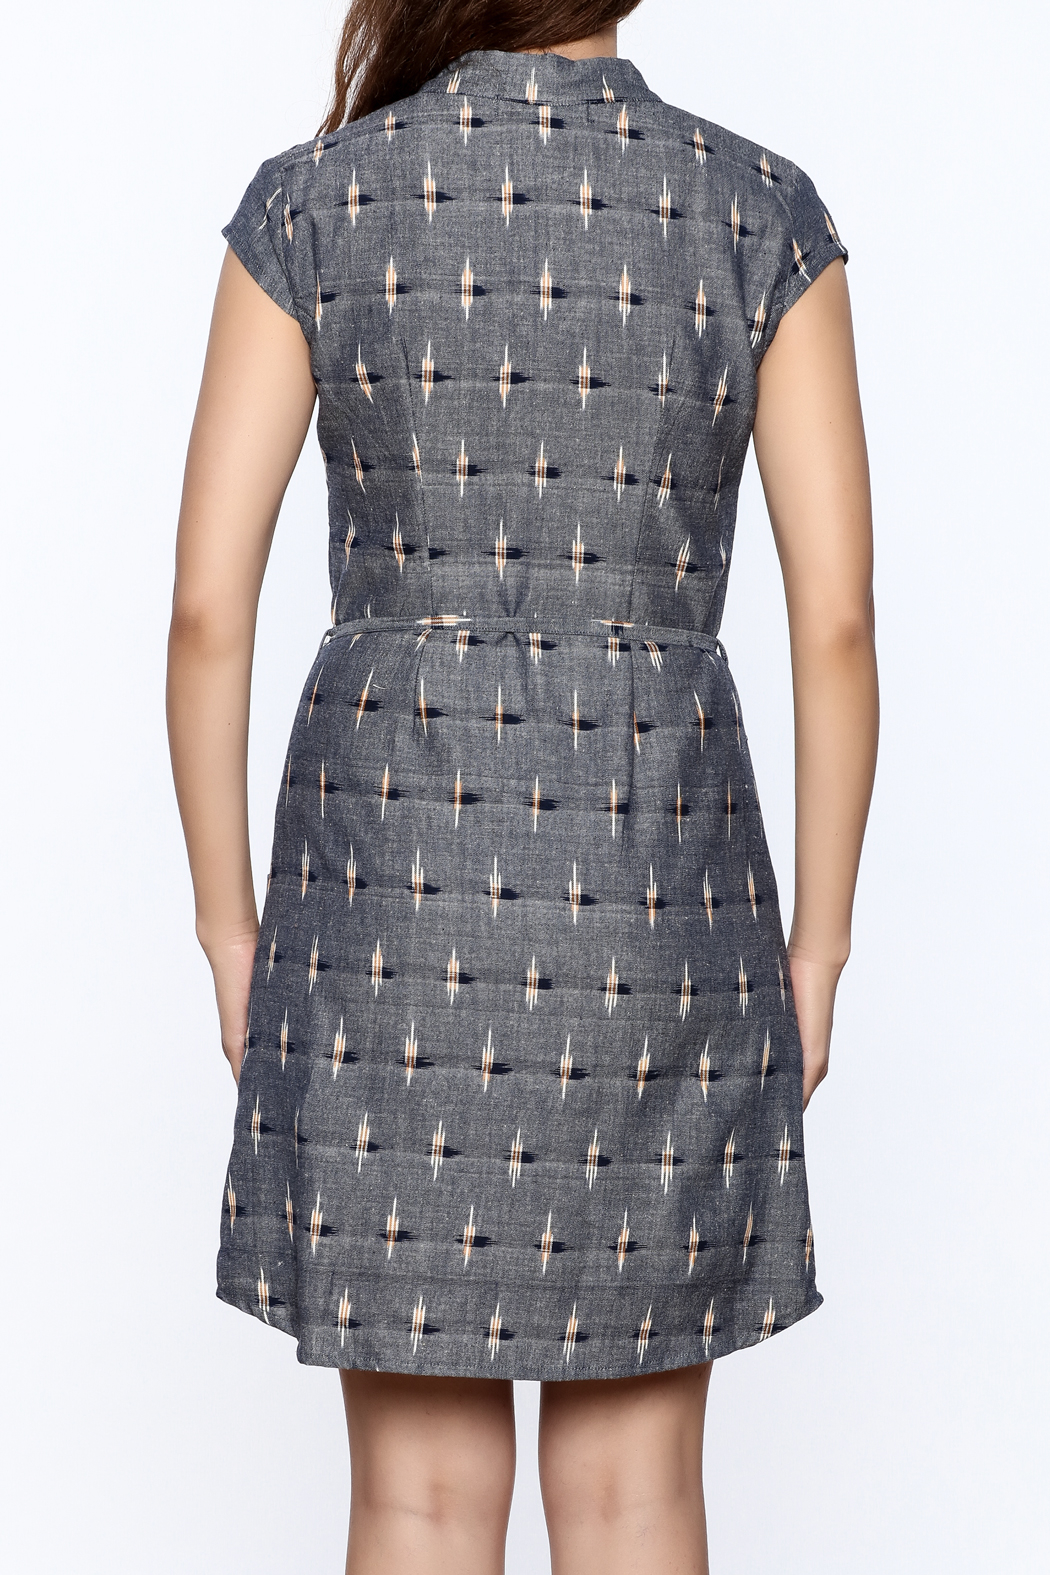 Passion Lilie Ikat Button Dress - Back Cropped Image